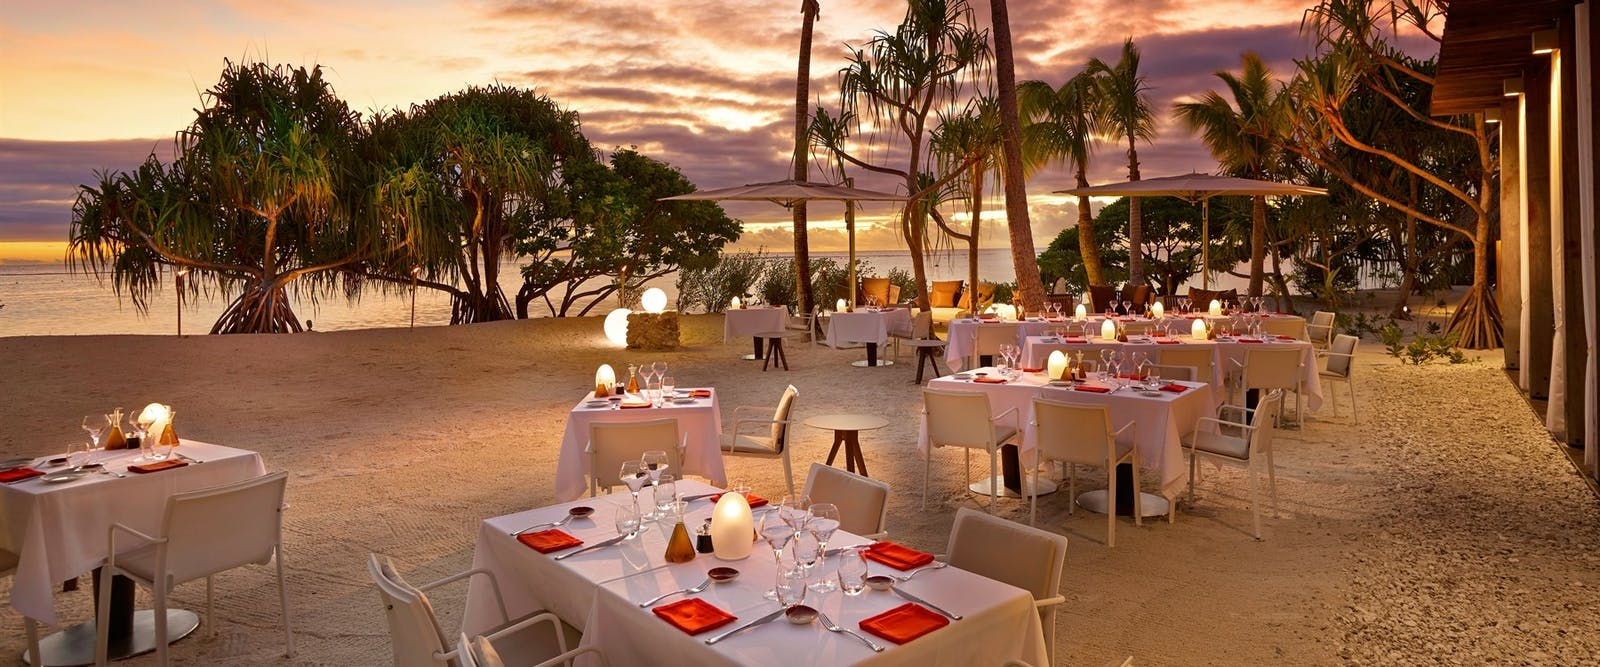 Restaurant beach dining at The Brando, Tahiti, French Polynesia